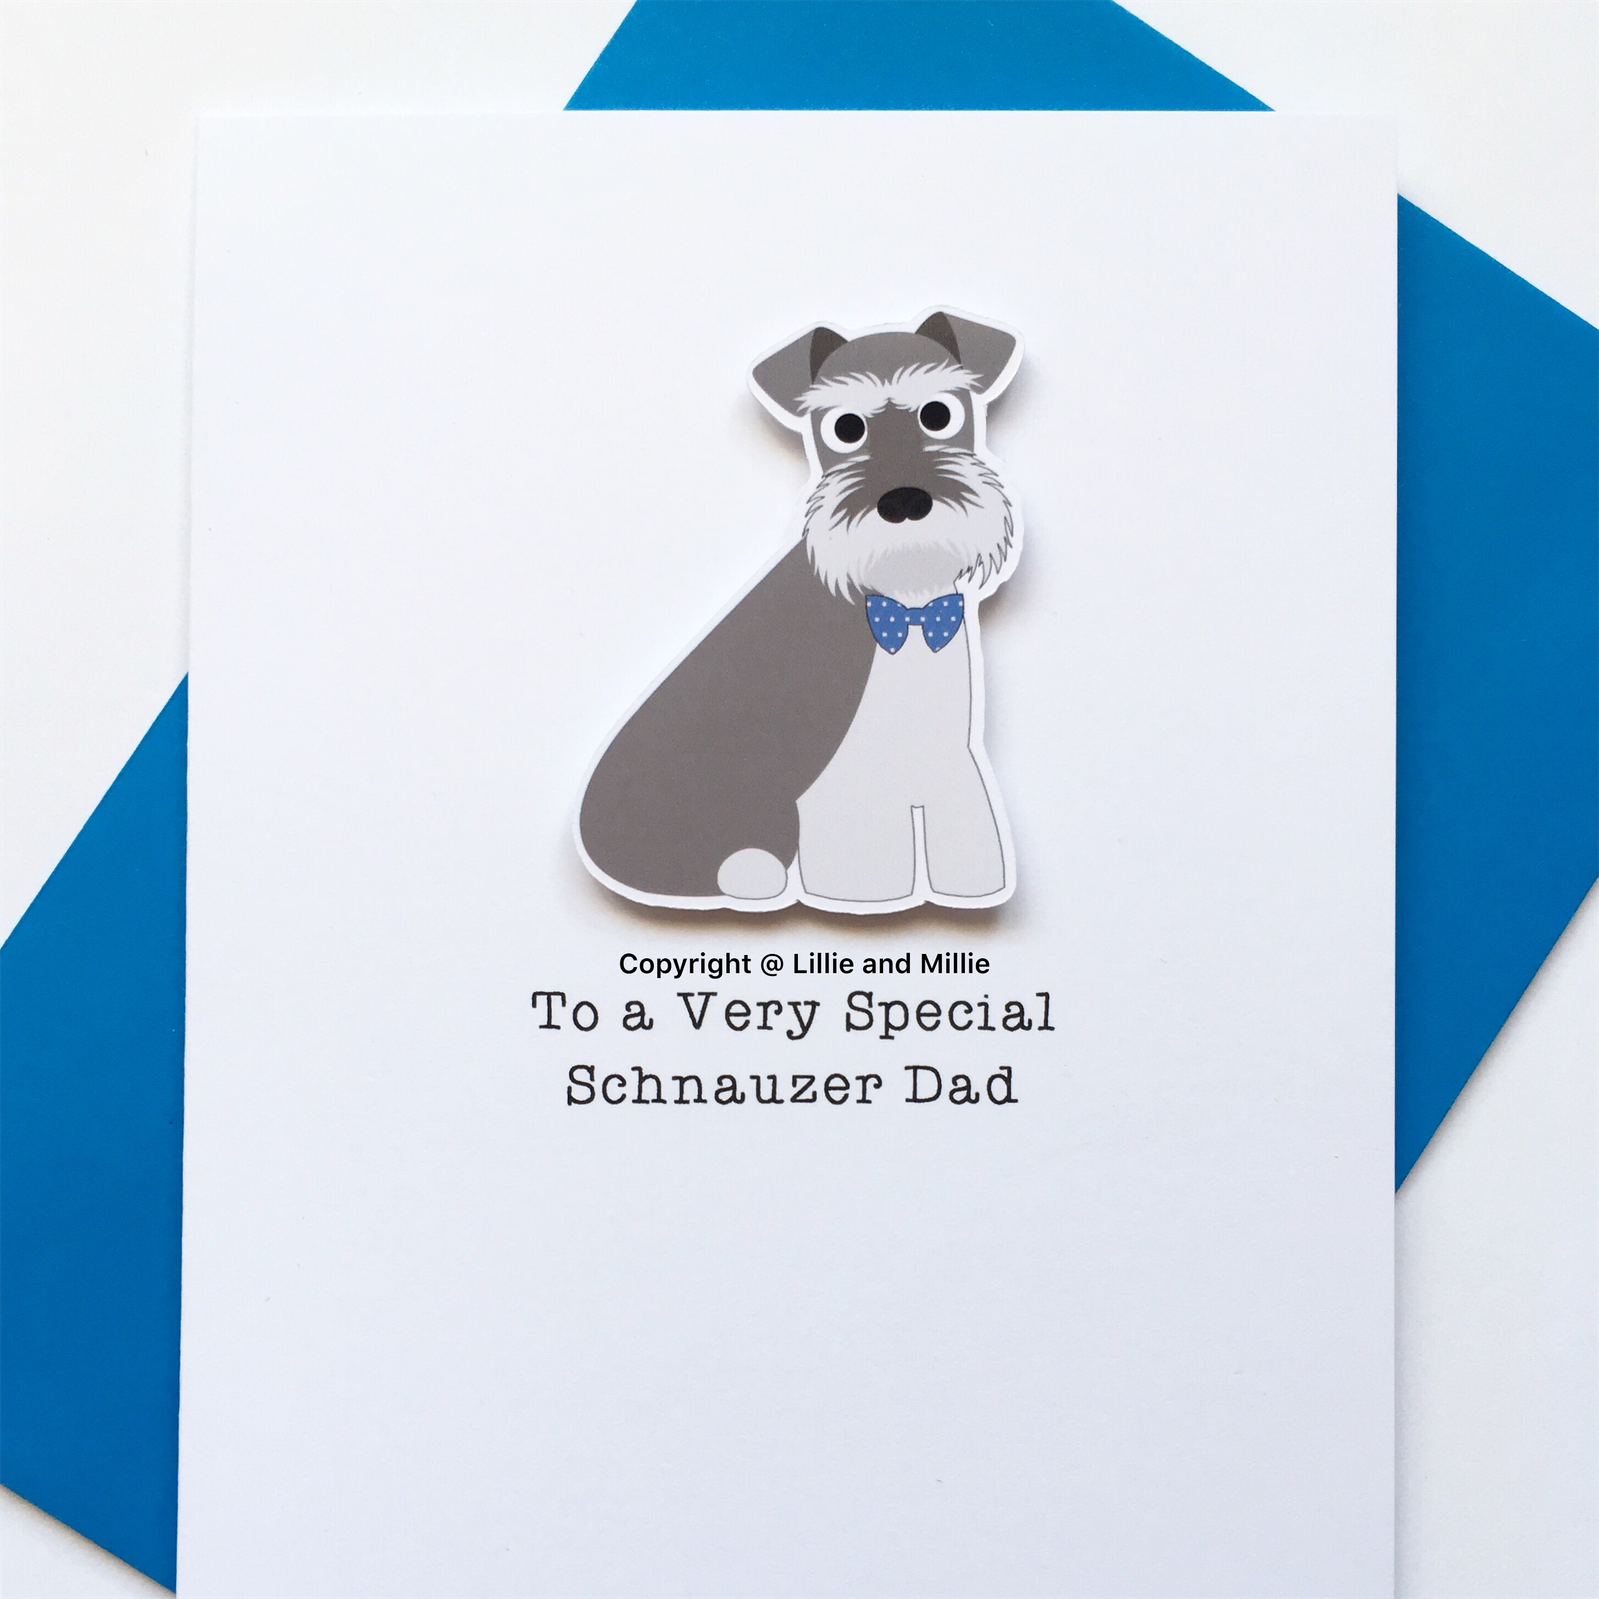 Precious Pooch To a Very Special Dad Salt and Pepper Schnauzer Card